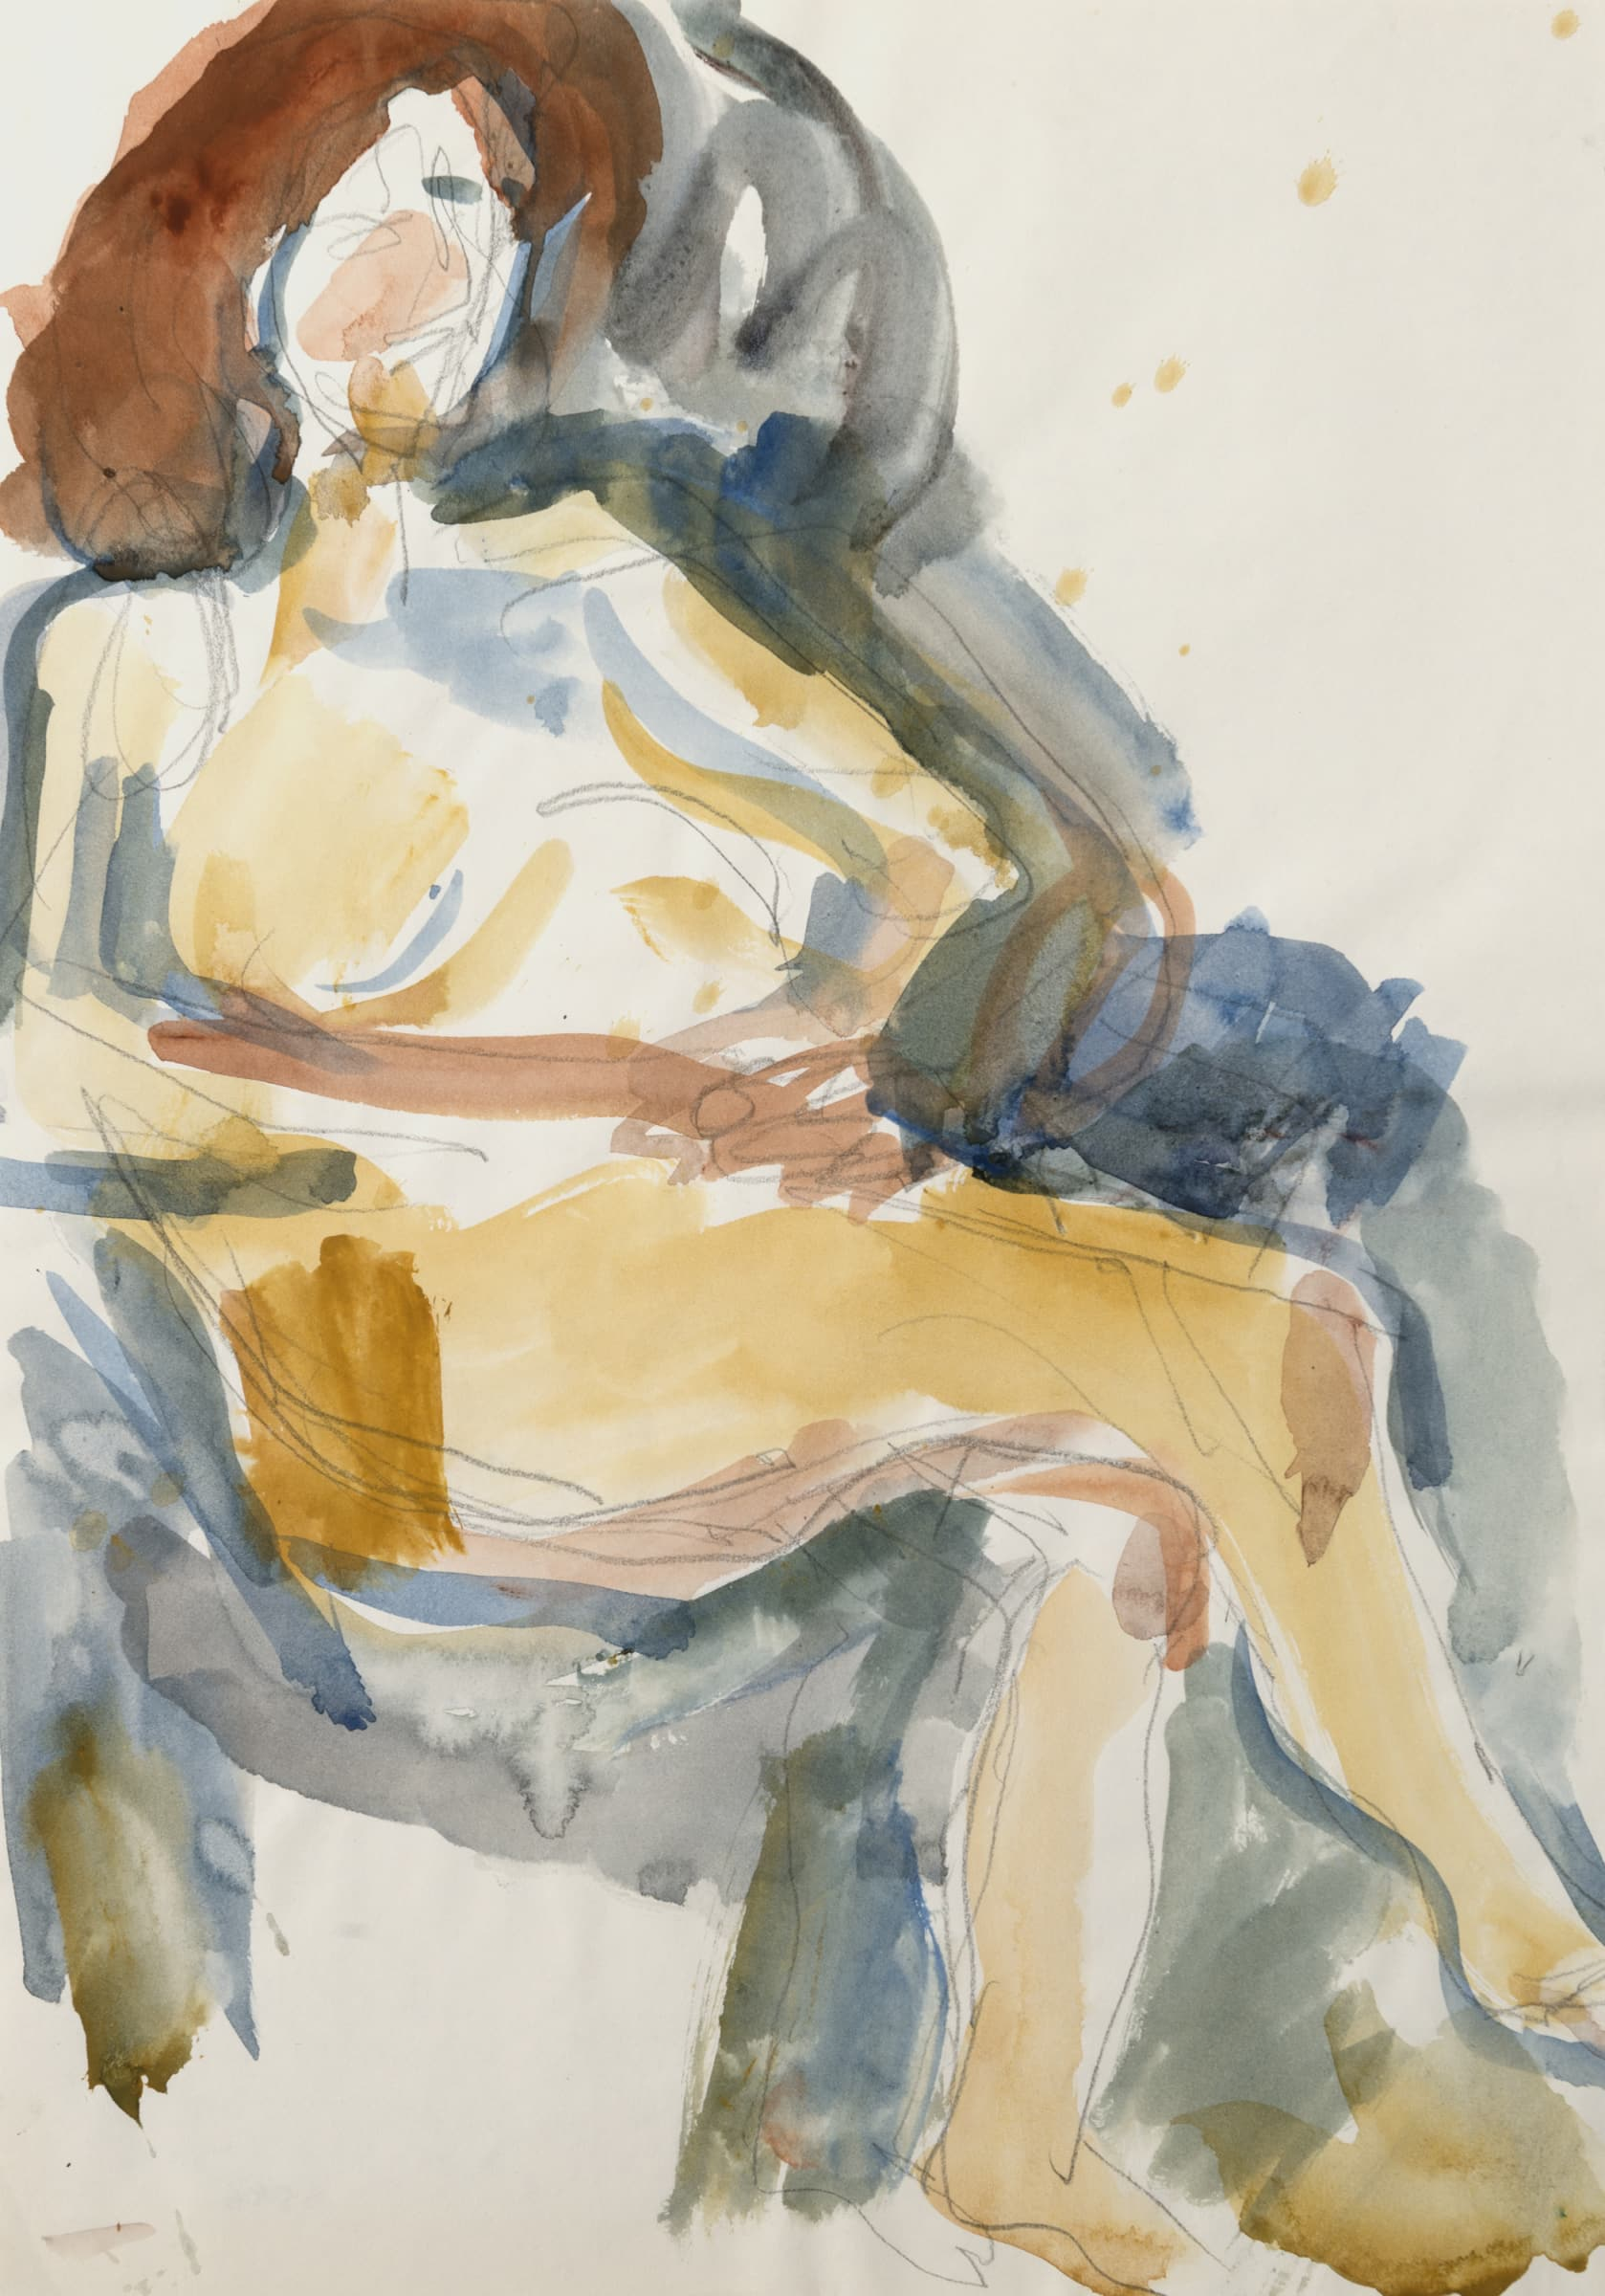 "<span class=""link fancybox-details-link""><a href=""/artists/62-mountford-tosswill-woollaston/works/6920-mountford-tosswill-woollaston-untitled-nude-in-chair-2-n.d./"">View Detail Page</a></span><div class=""artist""><strong>Mountford Tosswill Woollaston</strong></div> <div class=""title""><em>Untitled [Nude in Chair] (2)</em>, n.d.</div> <div class=""medium"">Watercolour and pencil on paper</div> <div class=""dimensions"">16.7 x 11.8 in<br />42.5 x 30 cm</div>"